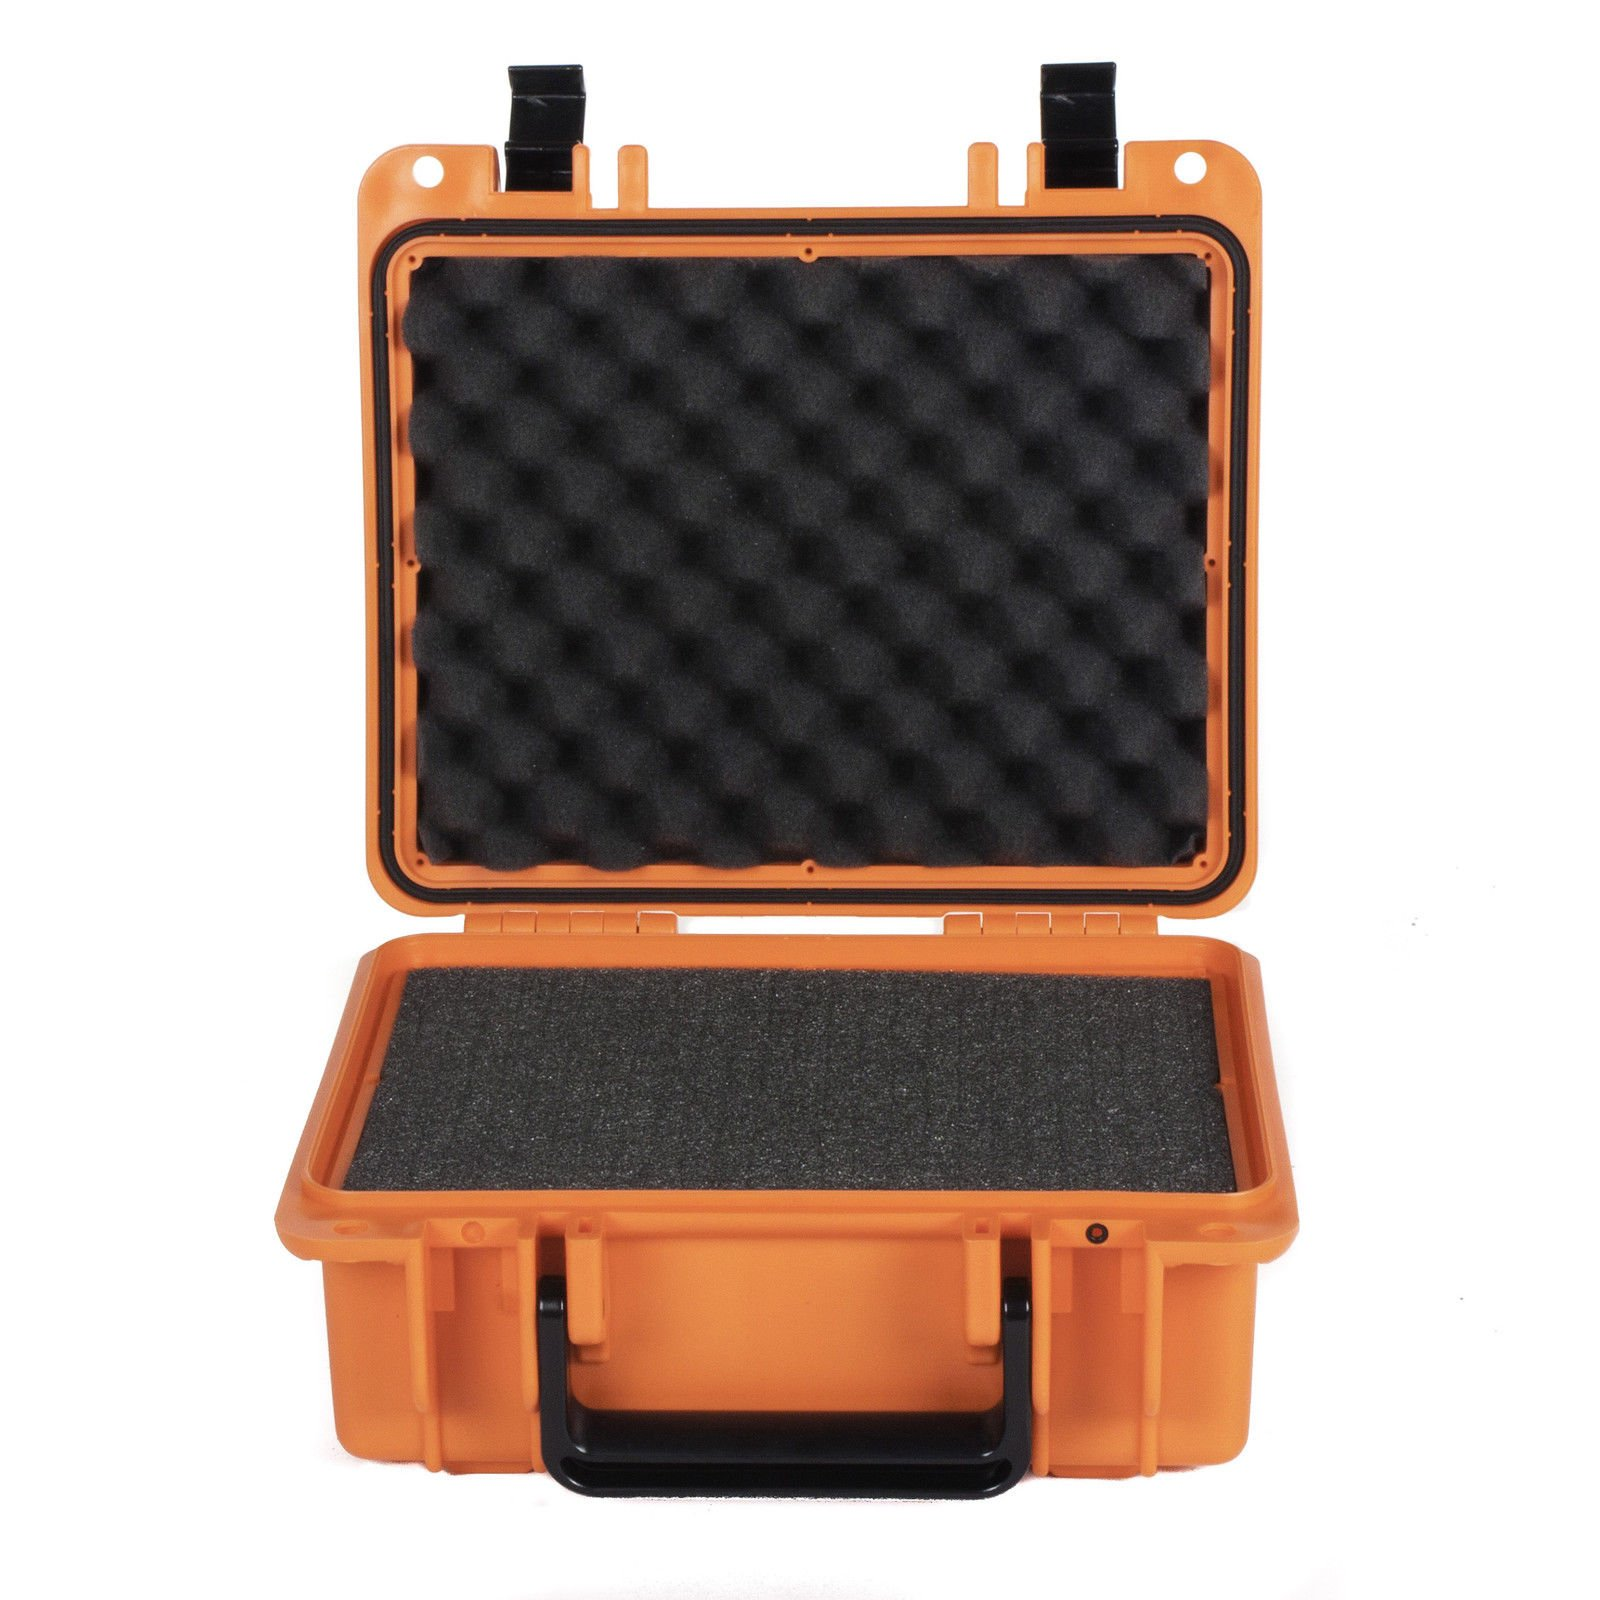 MRT SUPPLY Watertight Protective Equipment Storage Case with Foam, Orange with Ebook